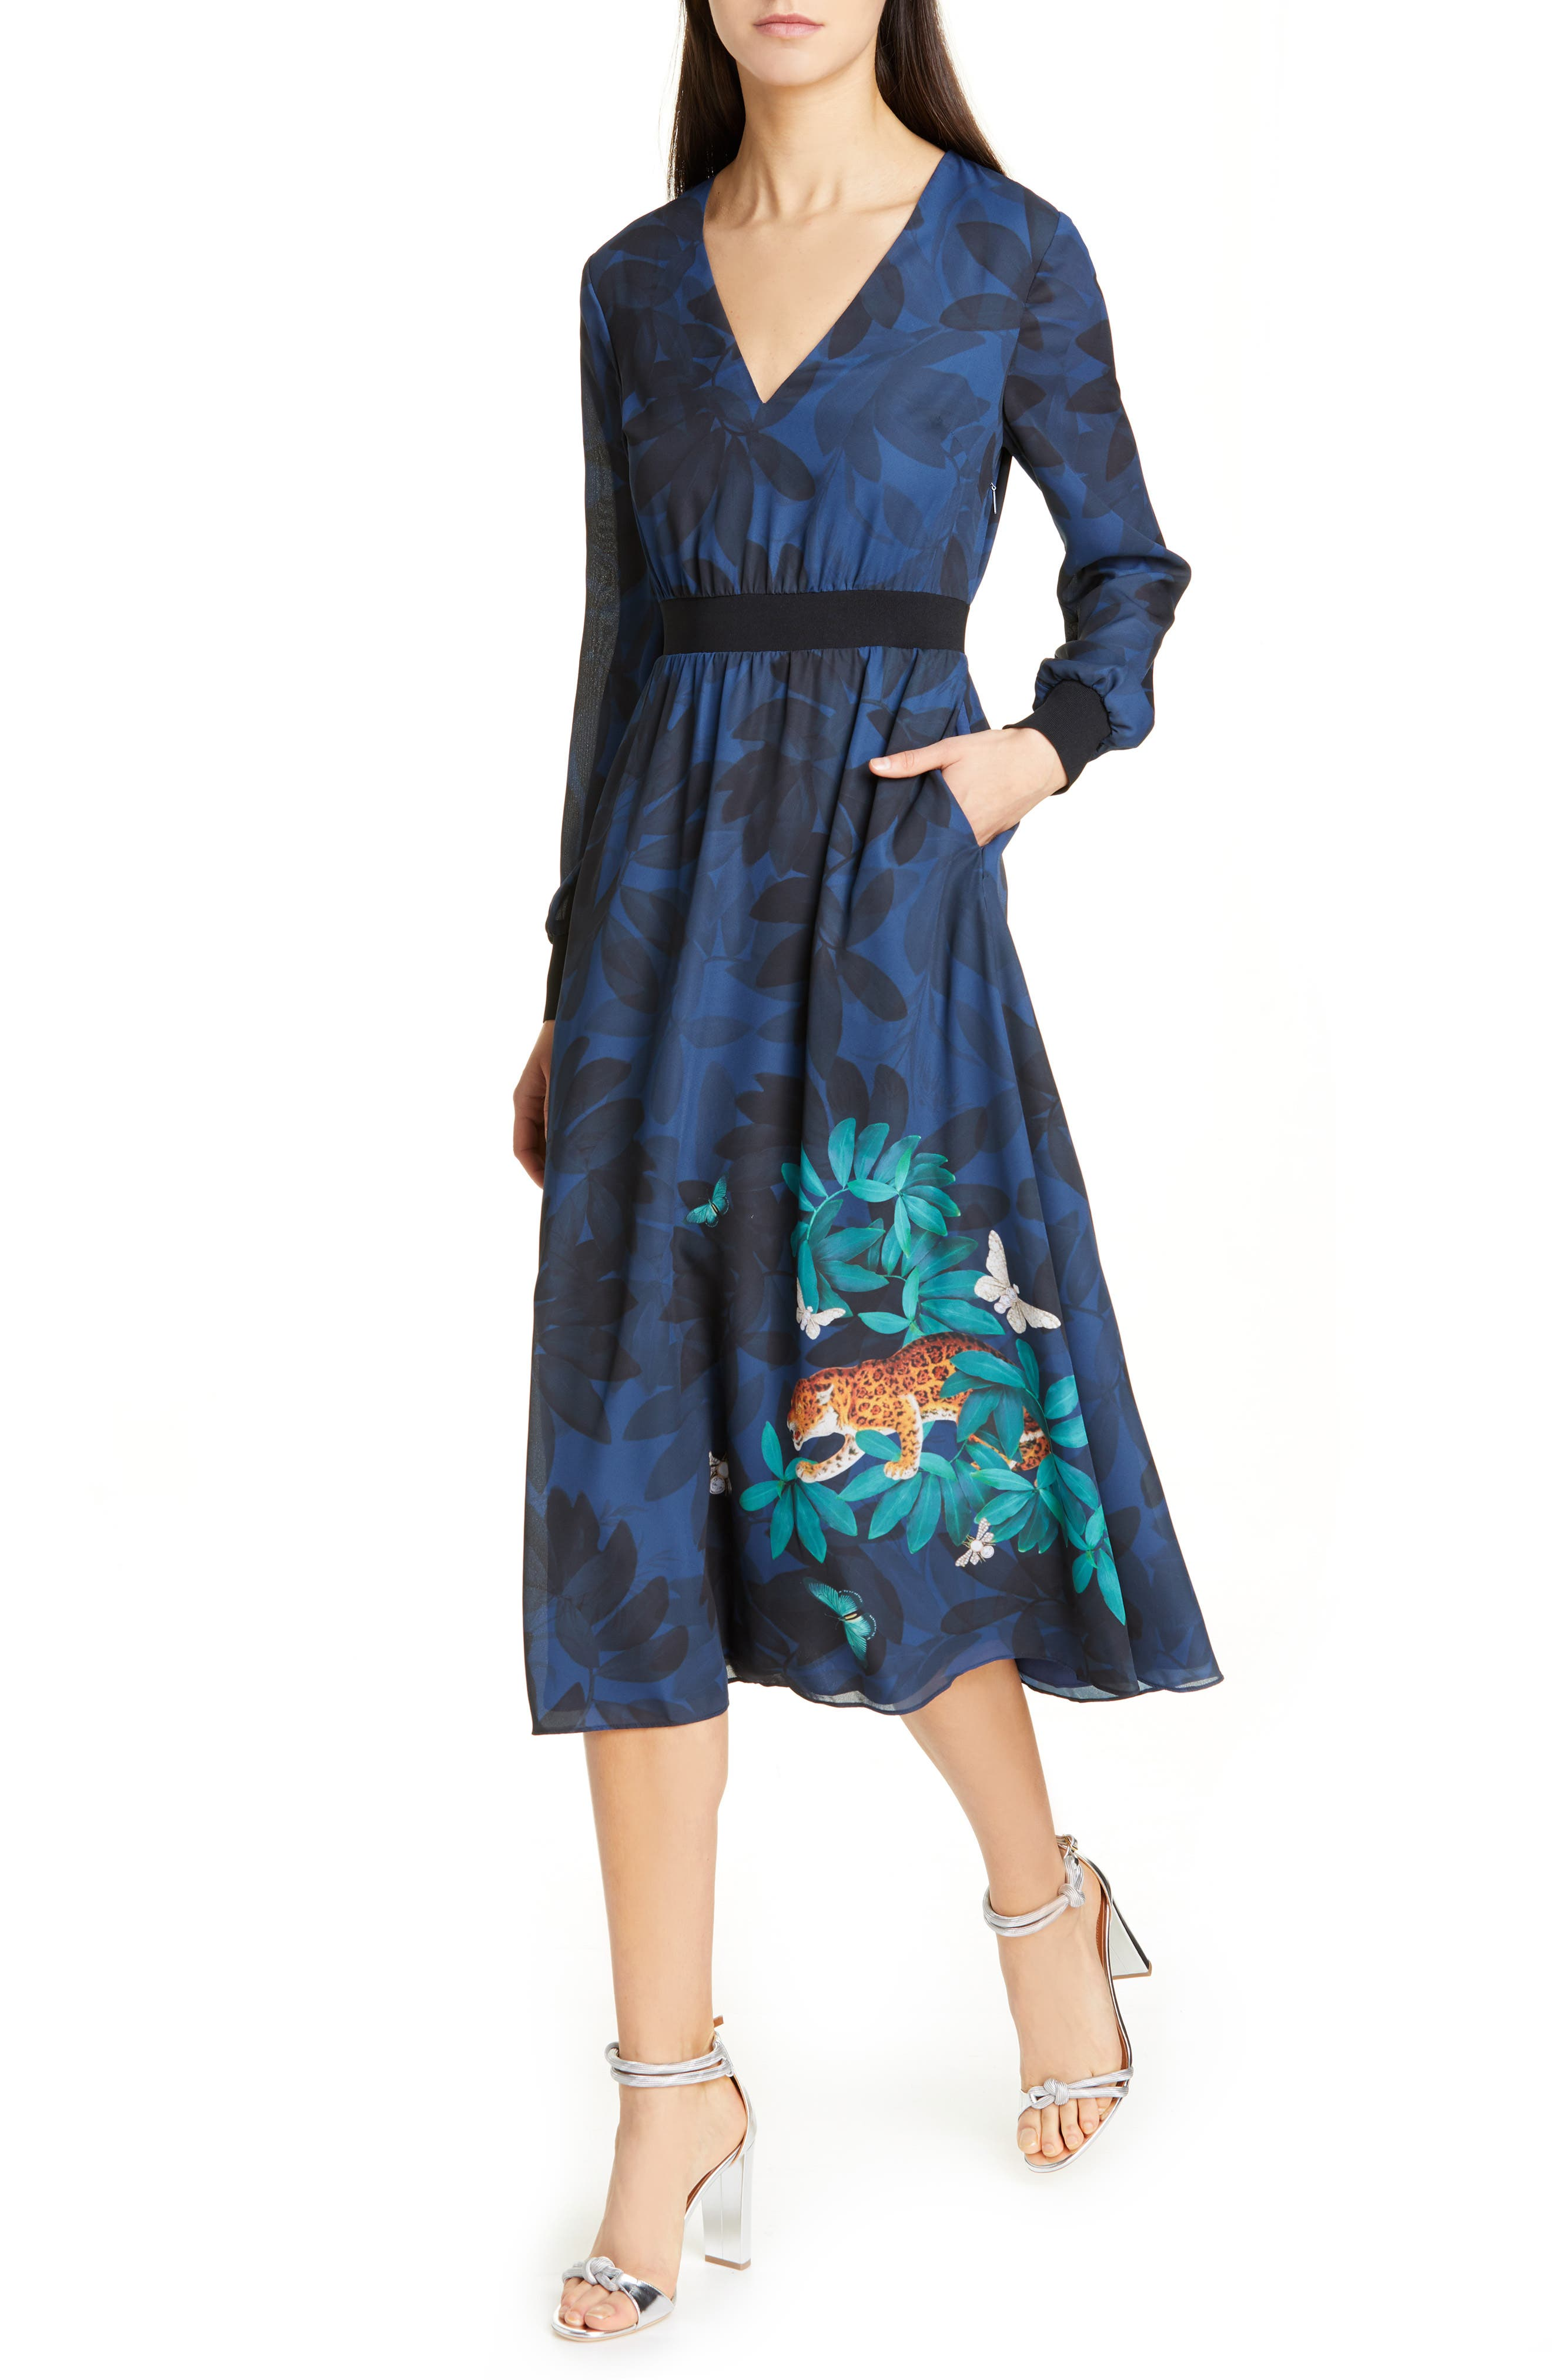 0eb4b8505 Ted Baker London Women s Dresses Clothing